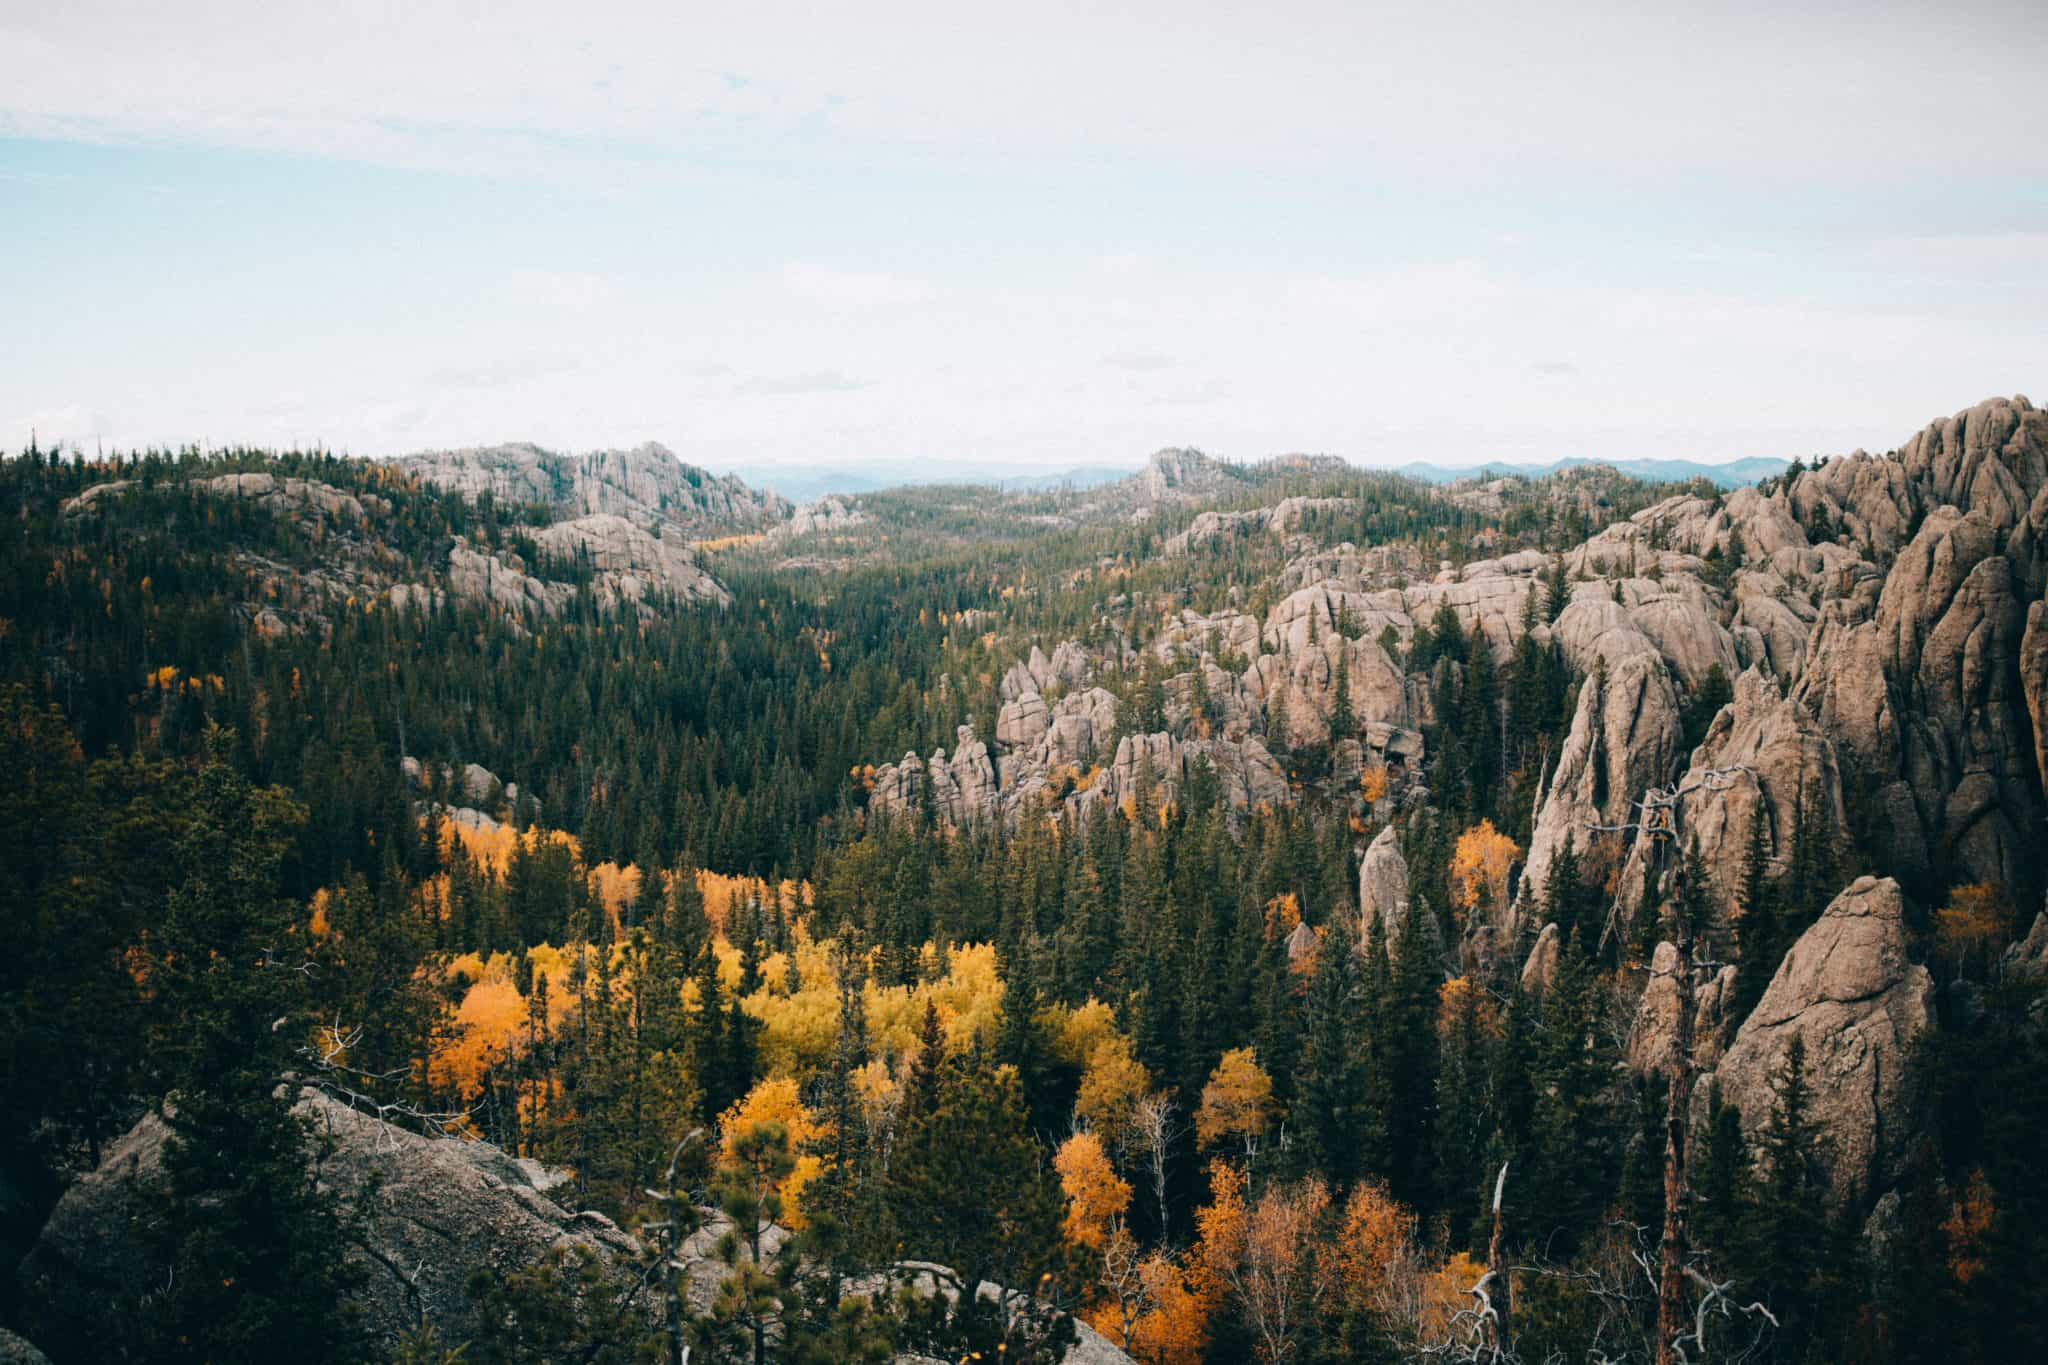 View of Custer State Park, South Dakota